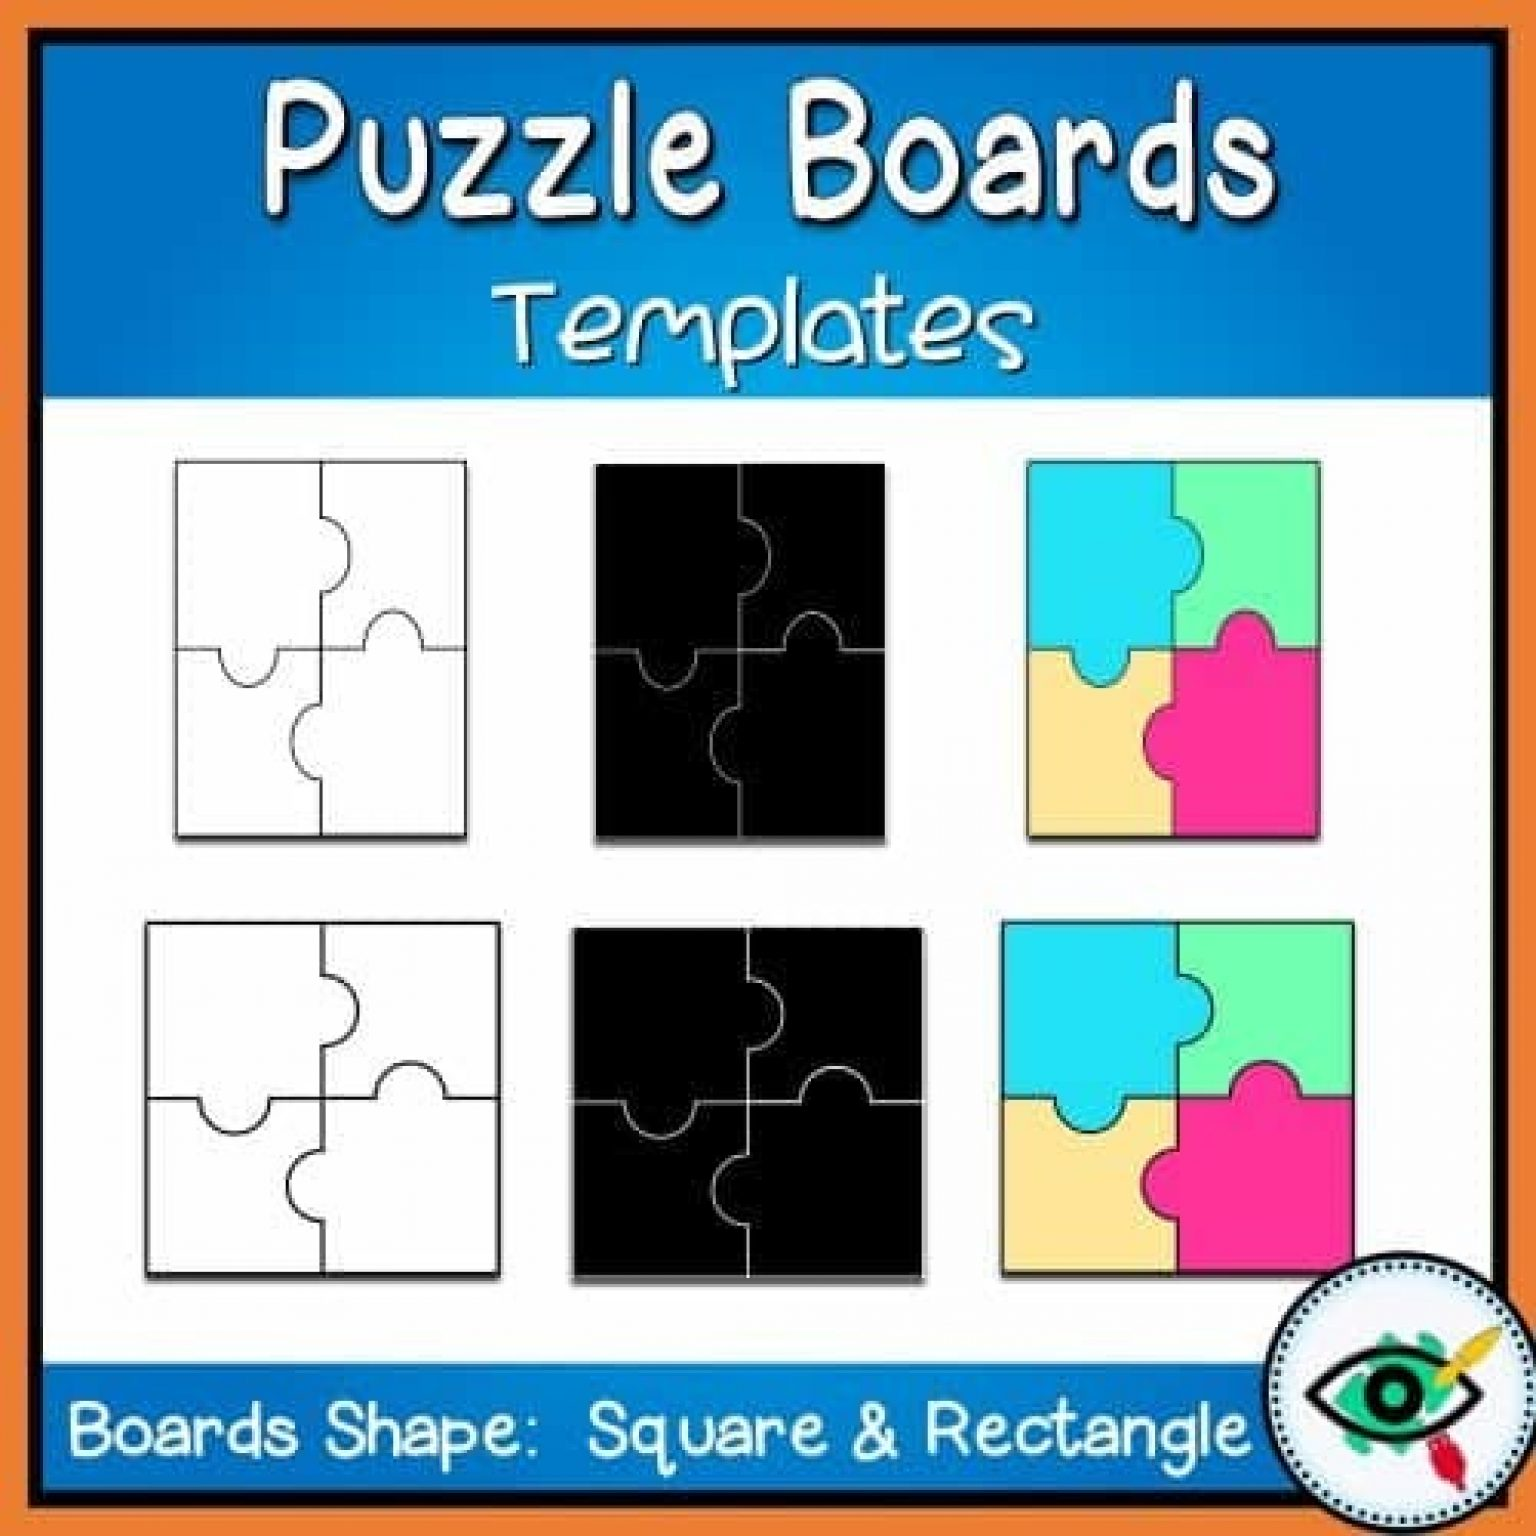 puzzle-boards-templates-title1